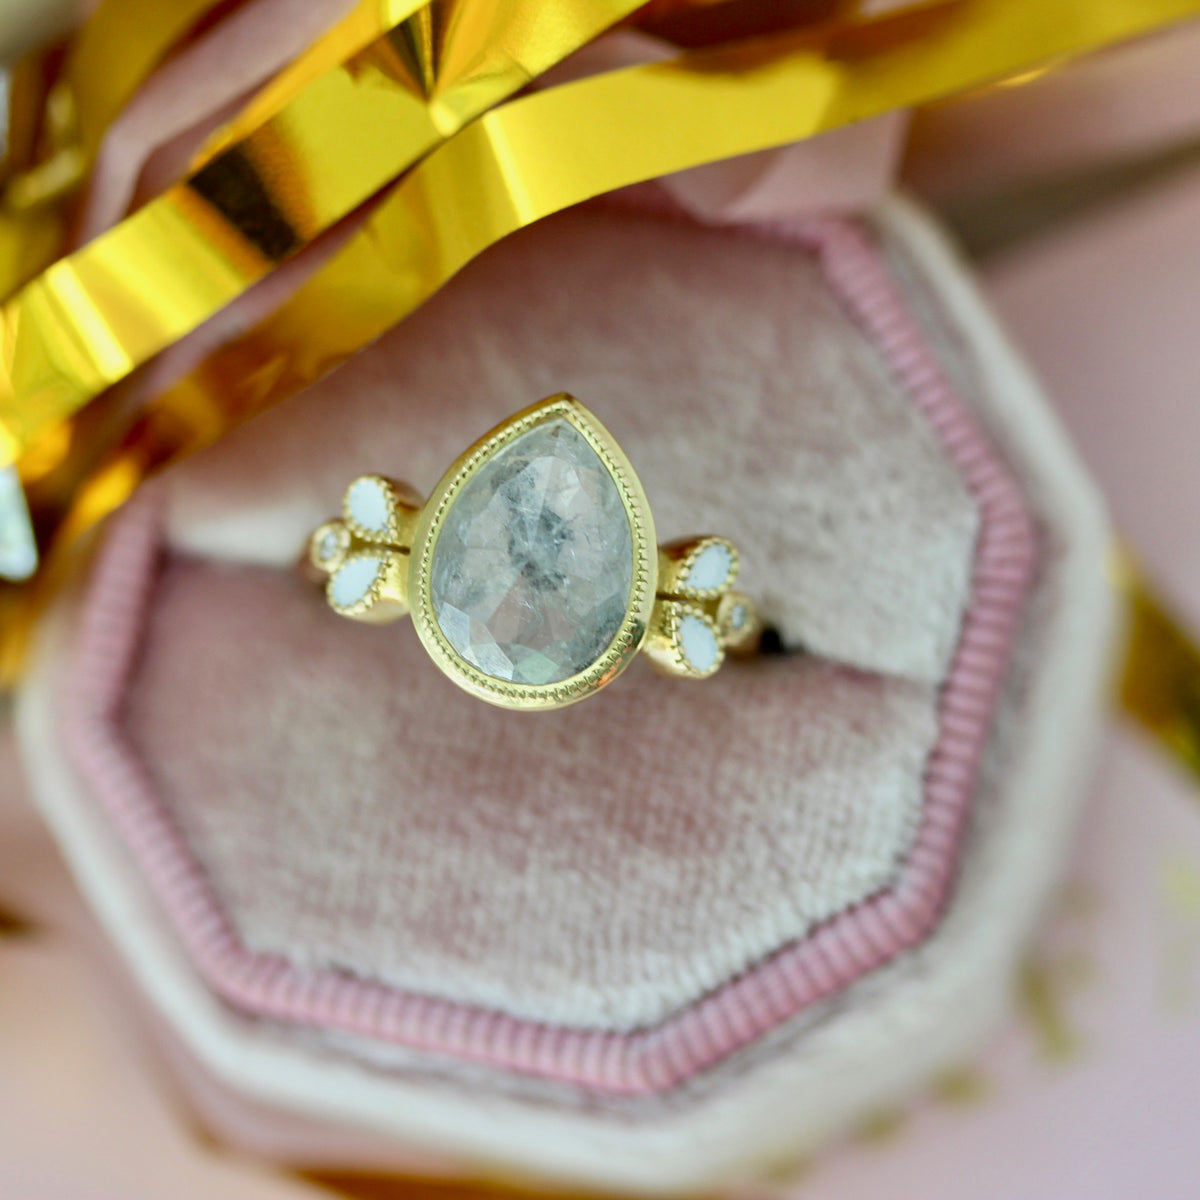 Magnolia Icey Pear Rose Cut Diamond Ring in Yellow Gold